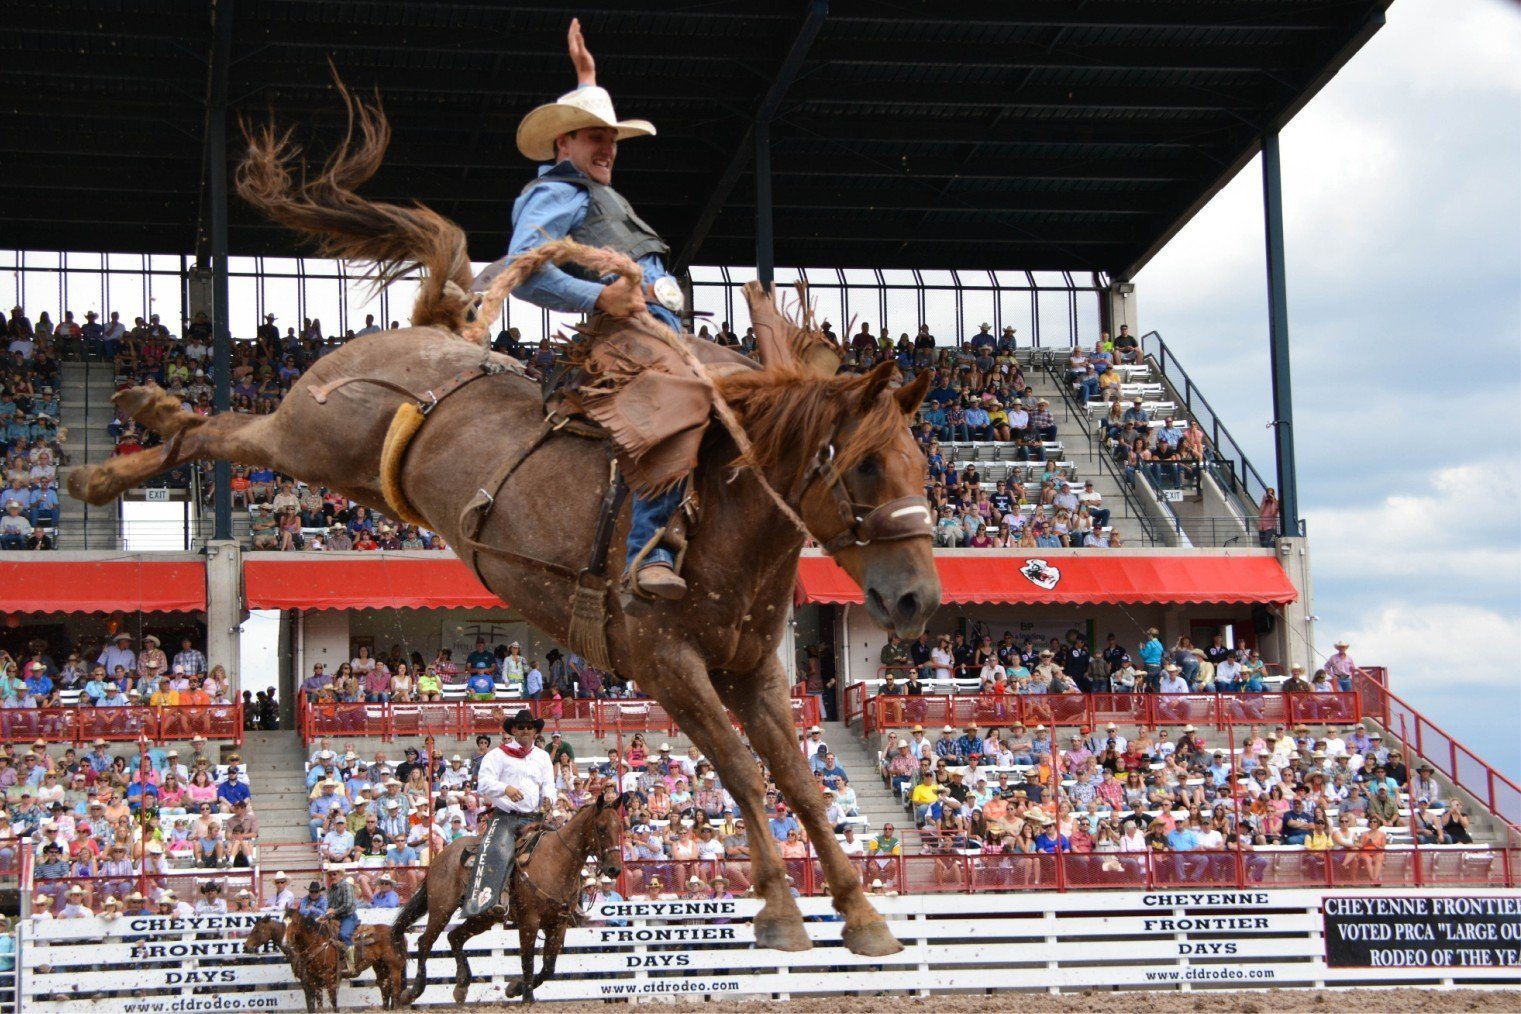 Cheyenne Frontier Days, USA. Родео Фестиваль в Шайенн, США.